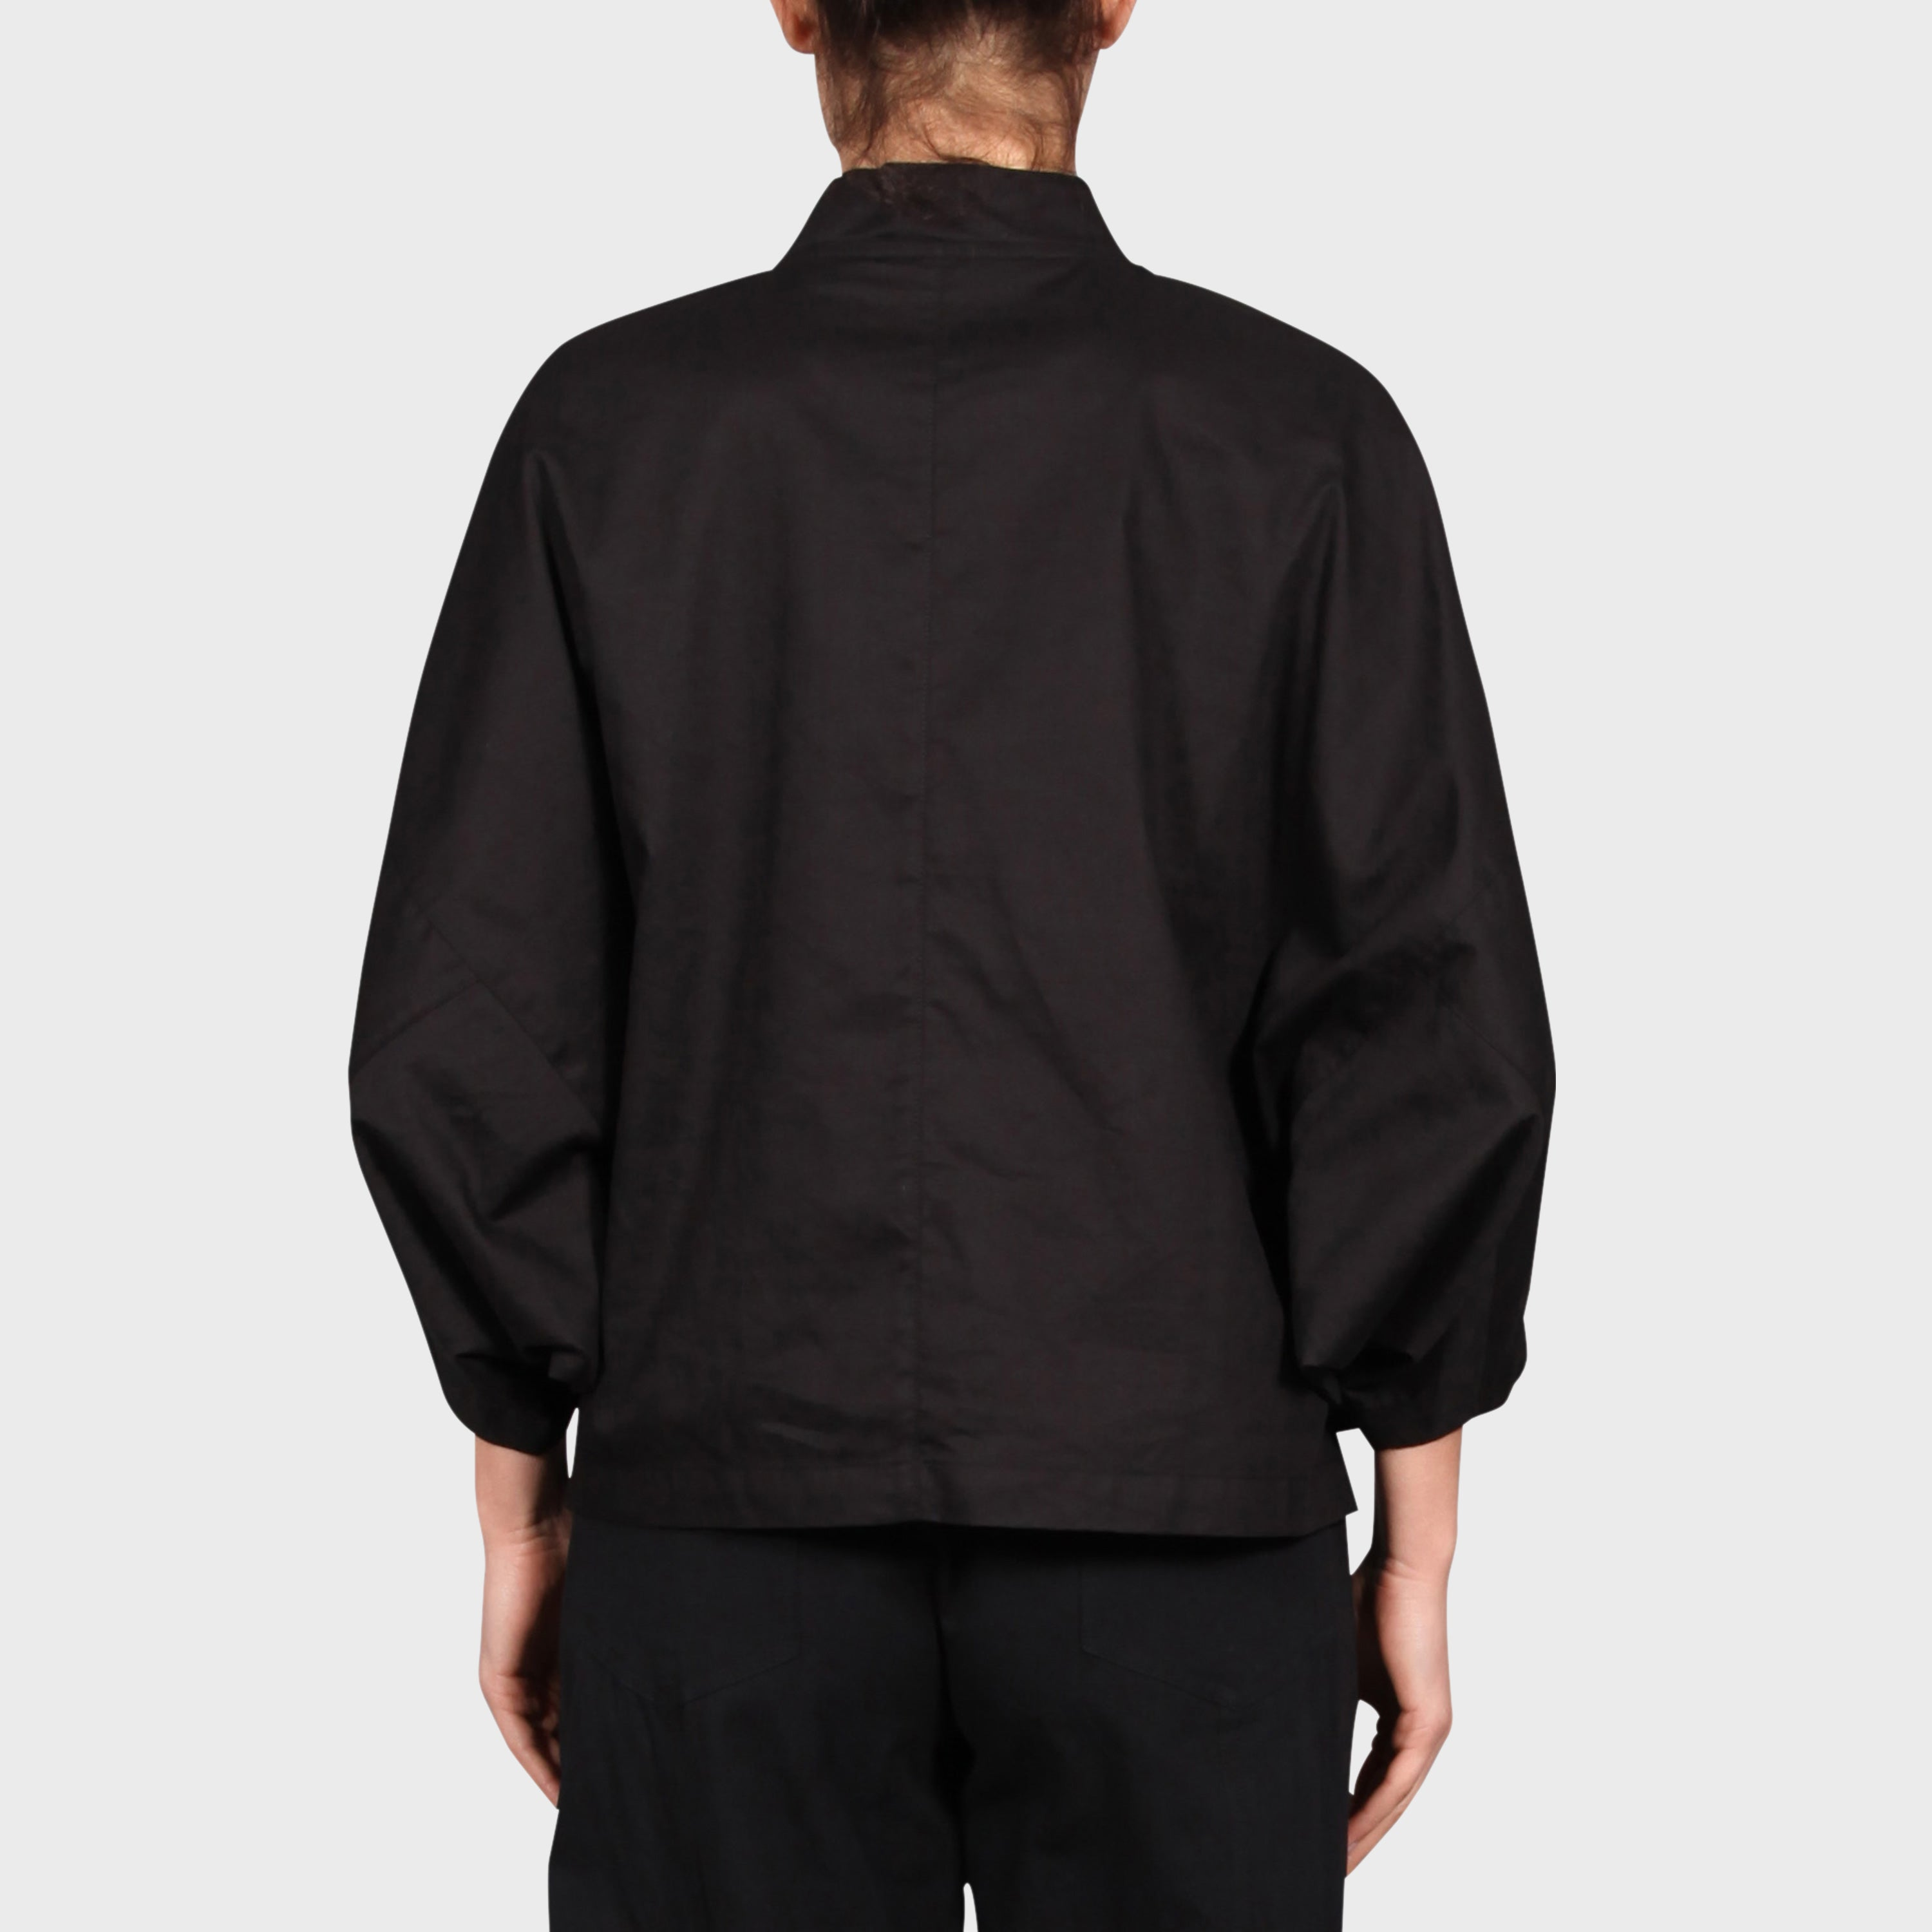 LEE SHIRT / BLACK